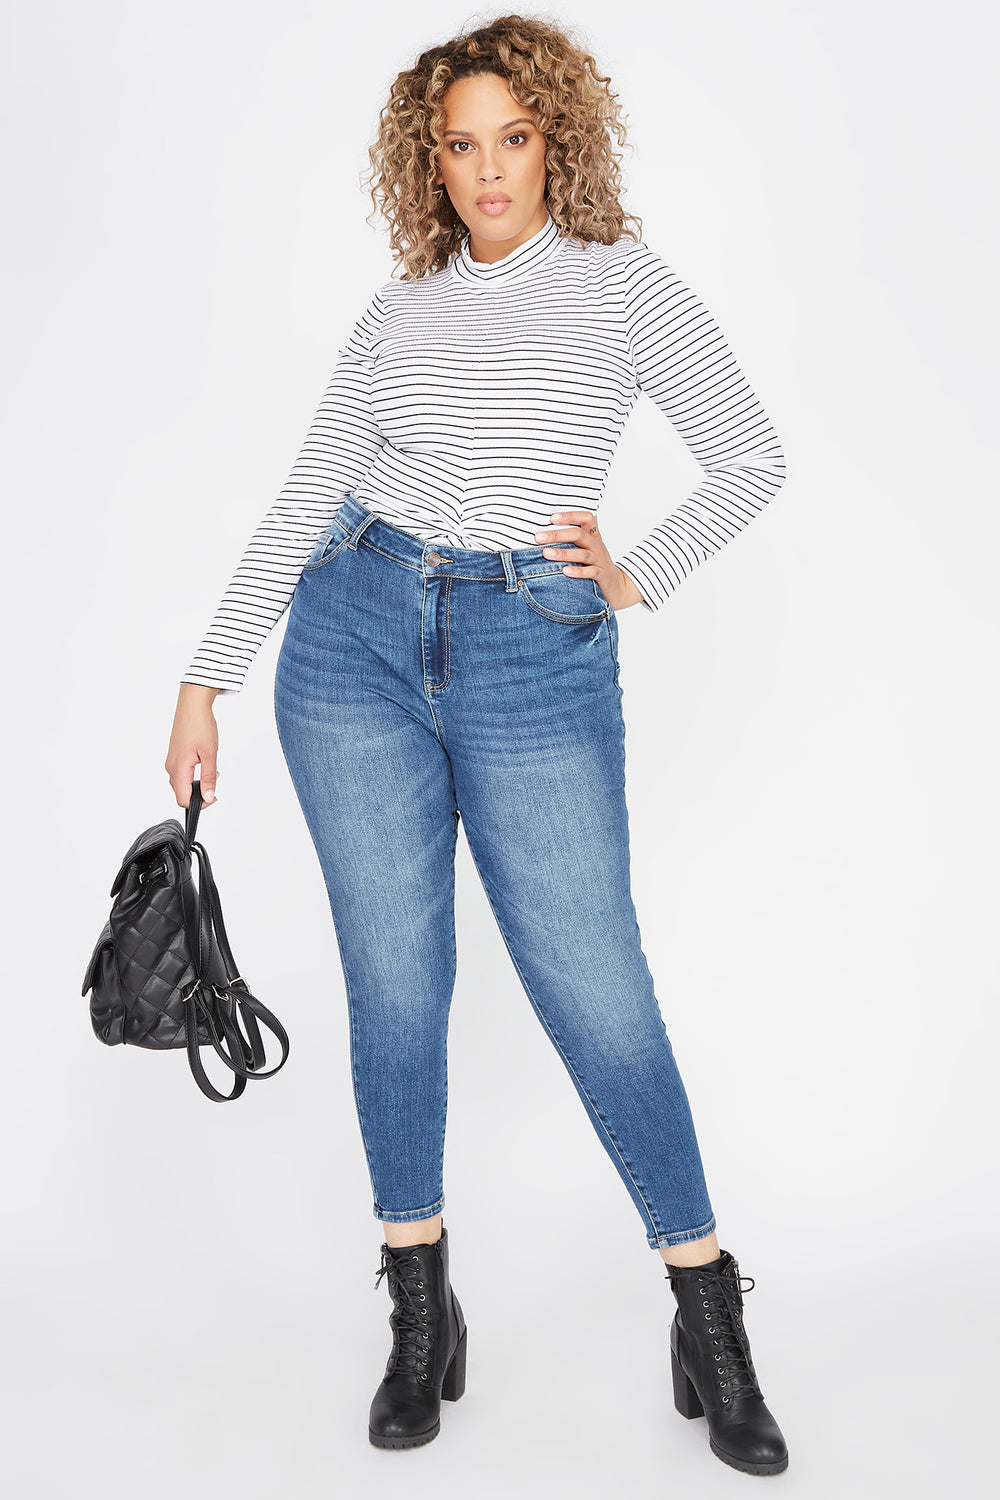 Plus Size Butt, I Love You High-Rise Push-Up Skinny Jean Dark Blue